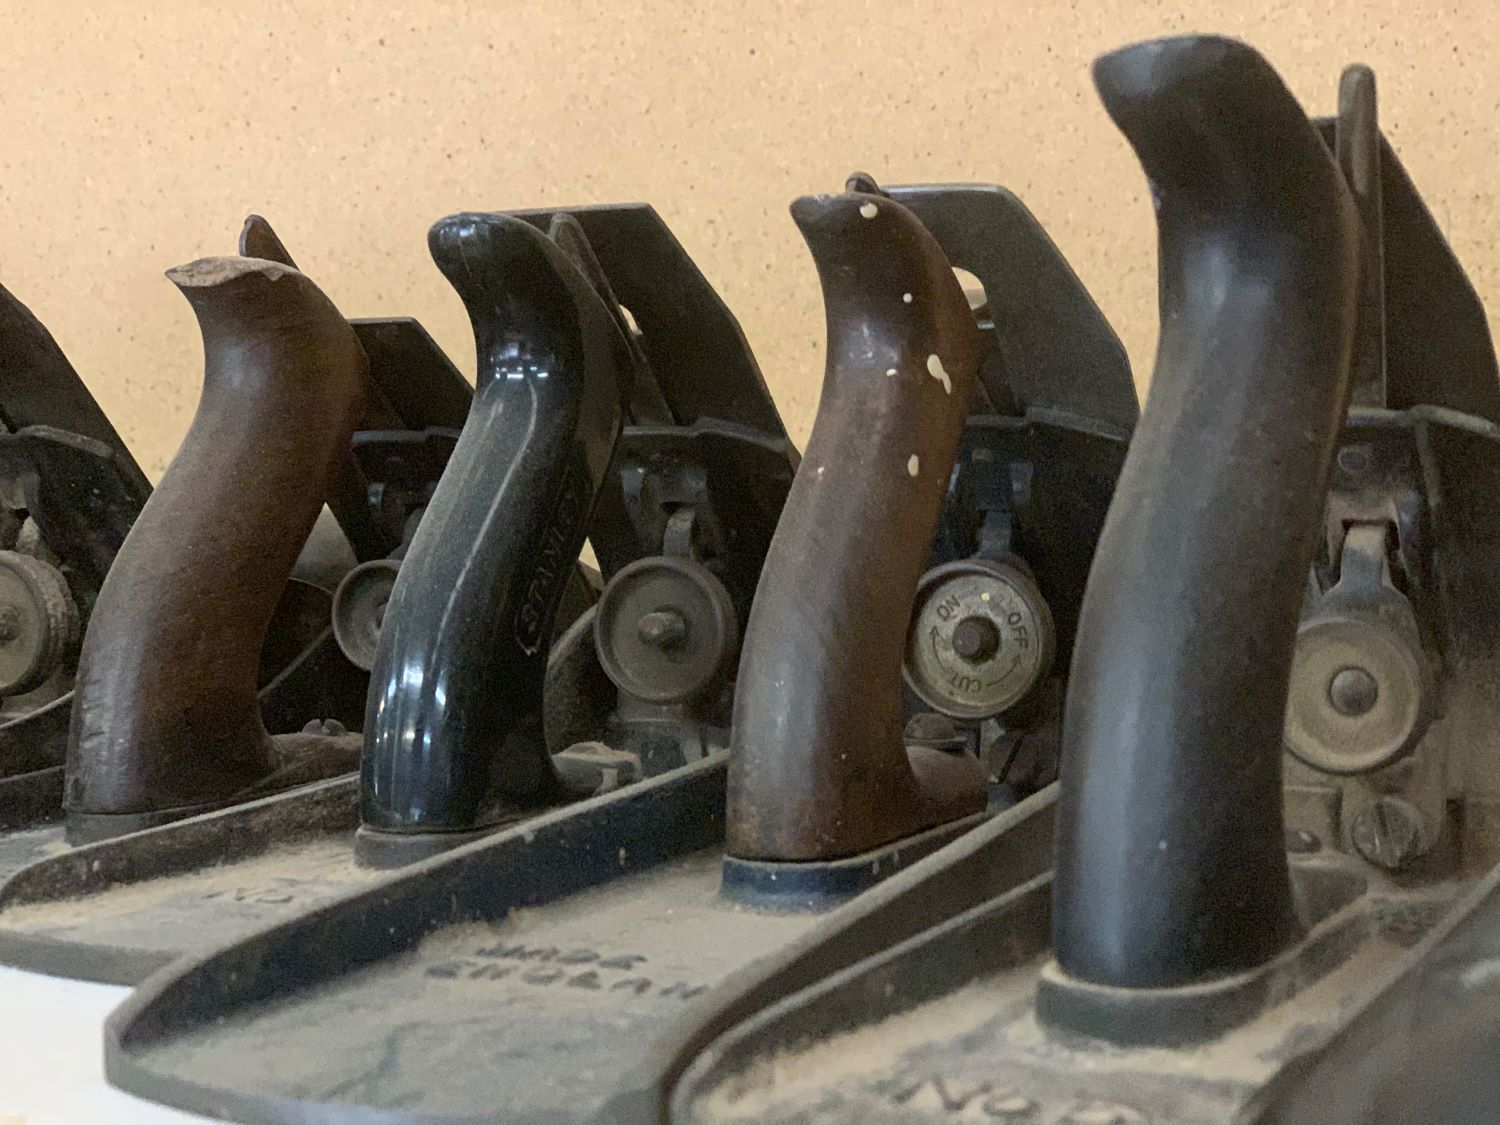 Hand planes in their varying sizes.